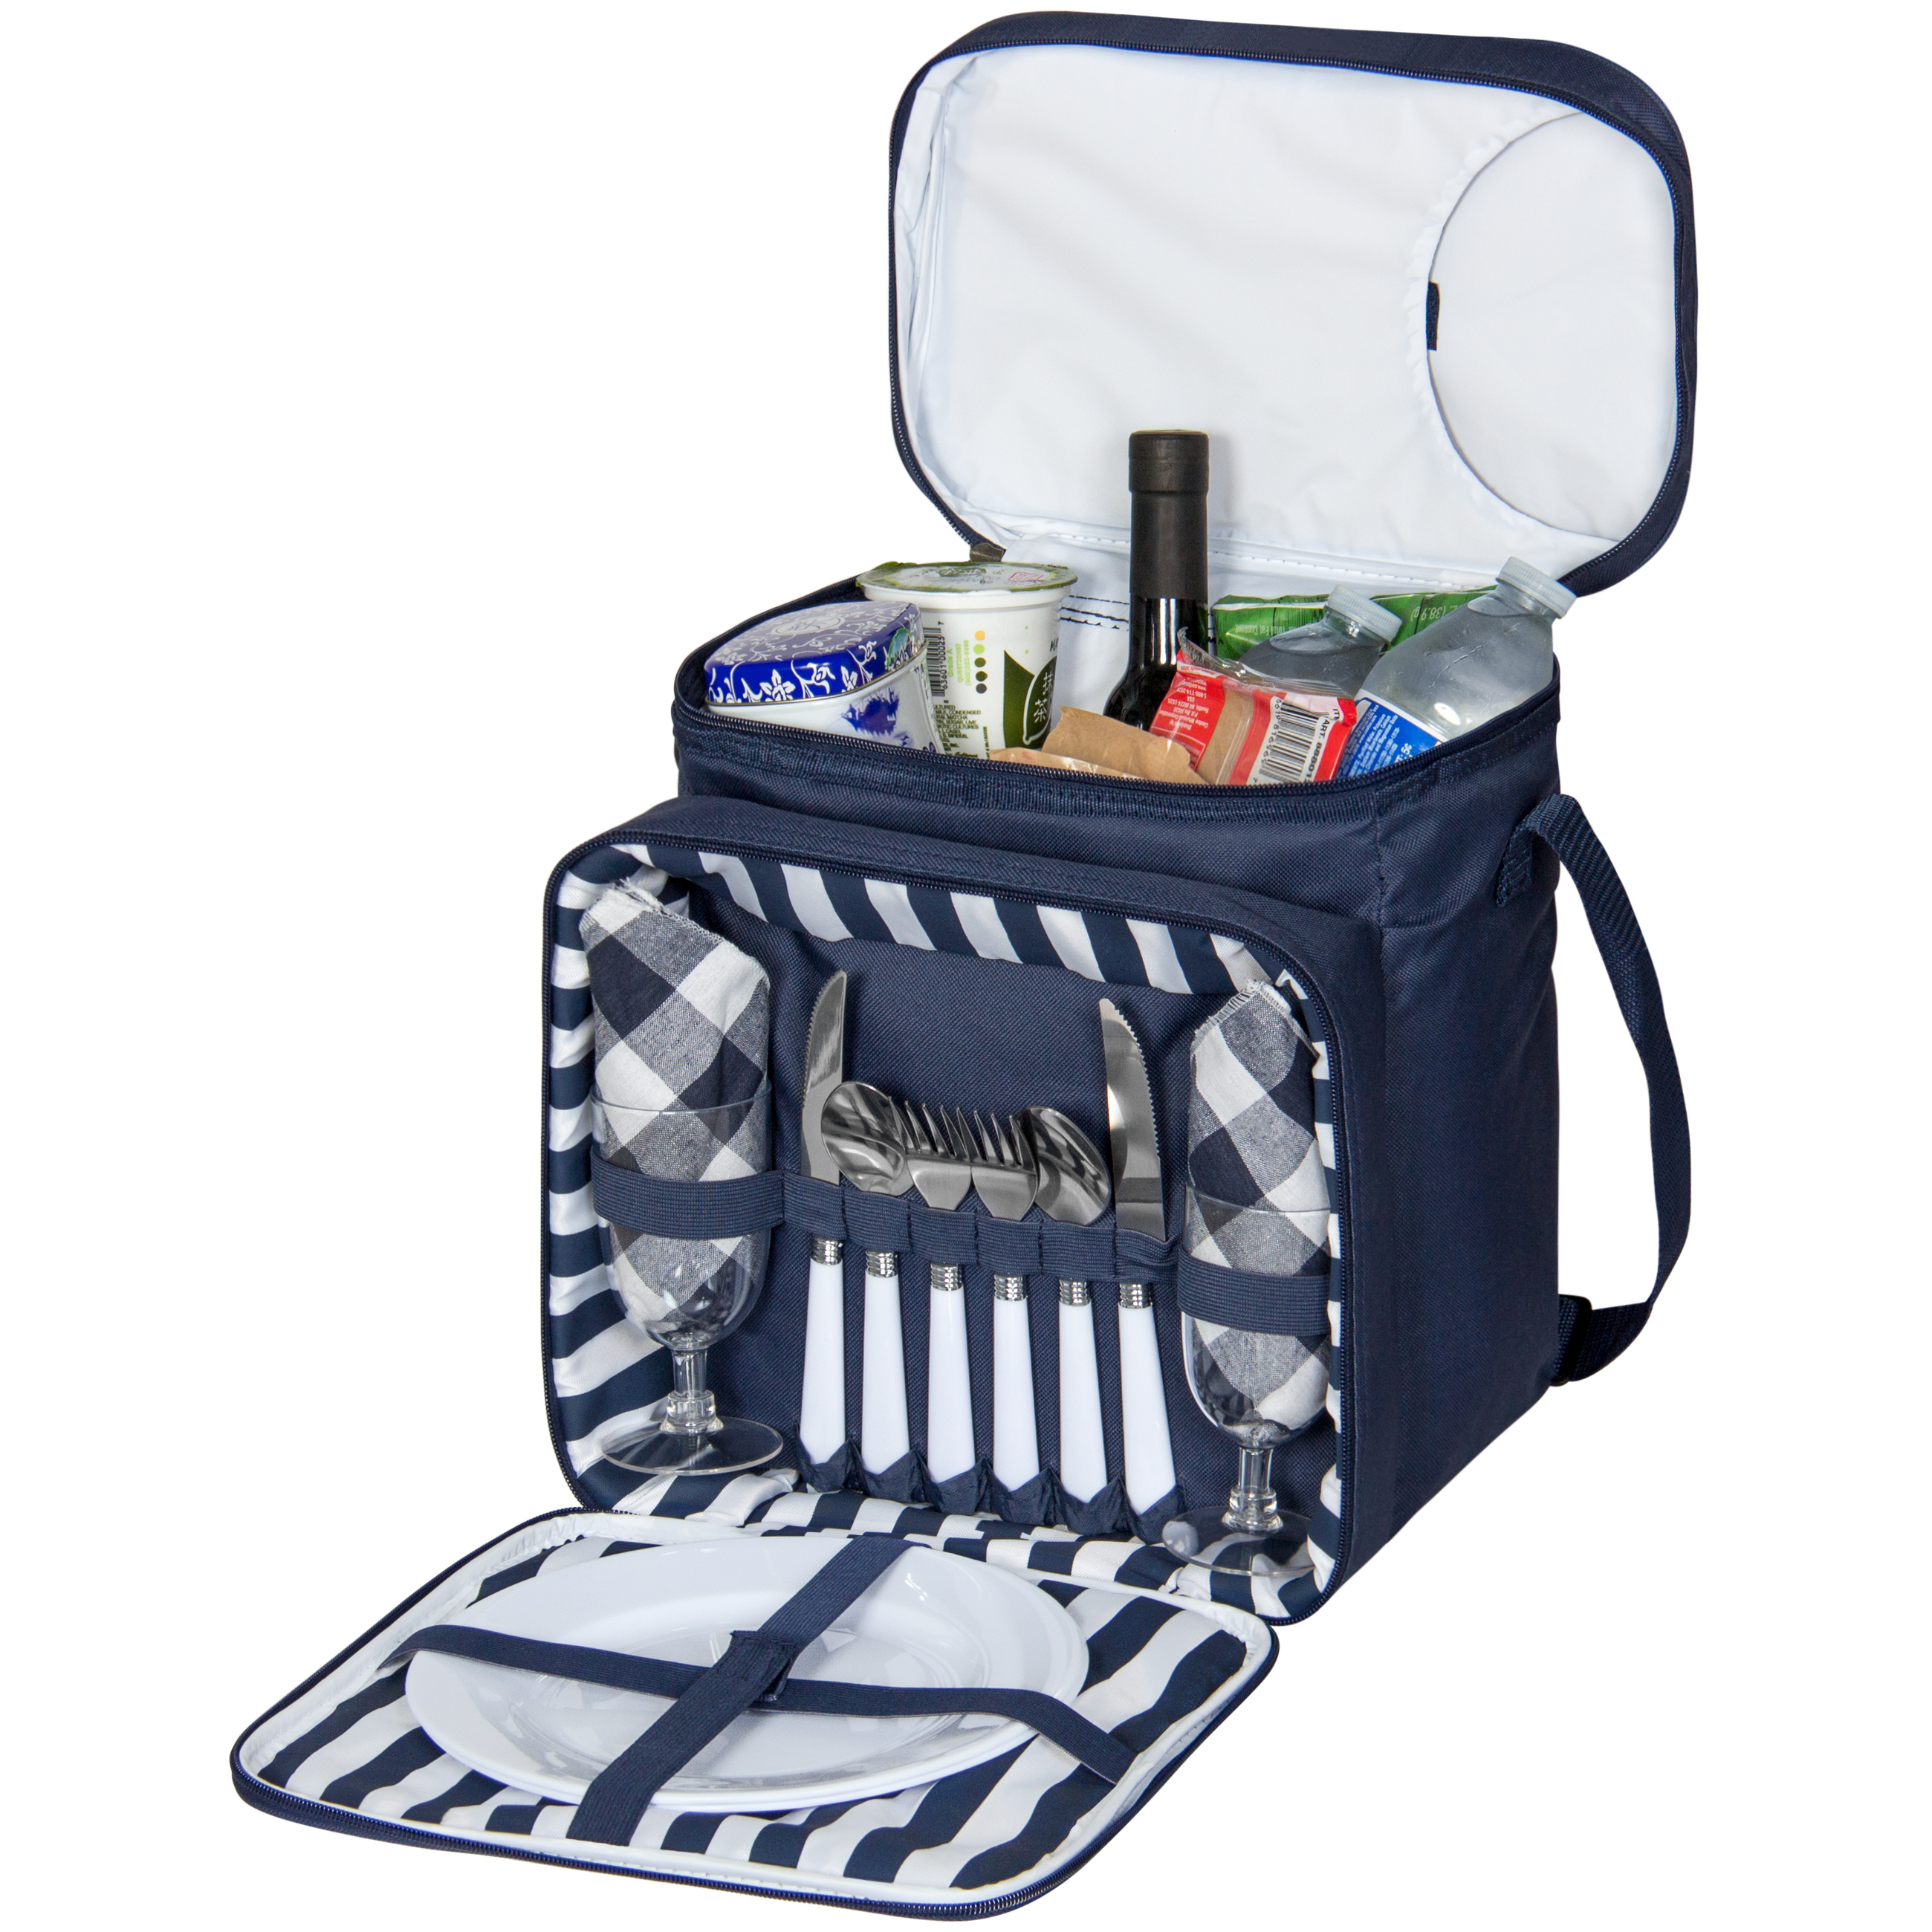 Best Choice Products 2-Person Picnic Bag Lunch Tote w/ Insulated Cooler Compartment, Easy-Access Opening, Flatware, Plates, Silverware, Cups - Blue